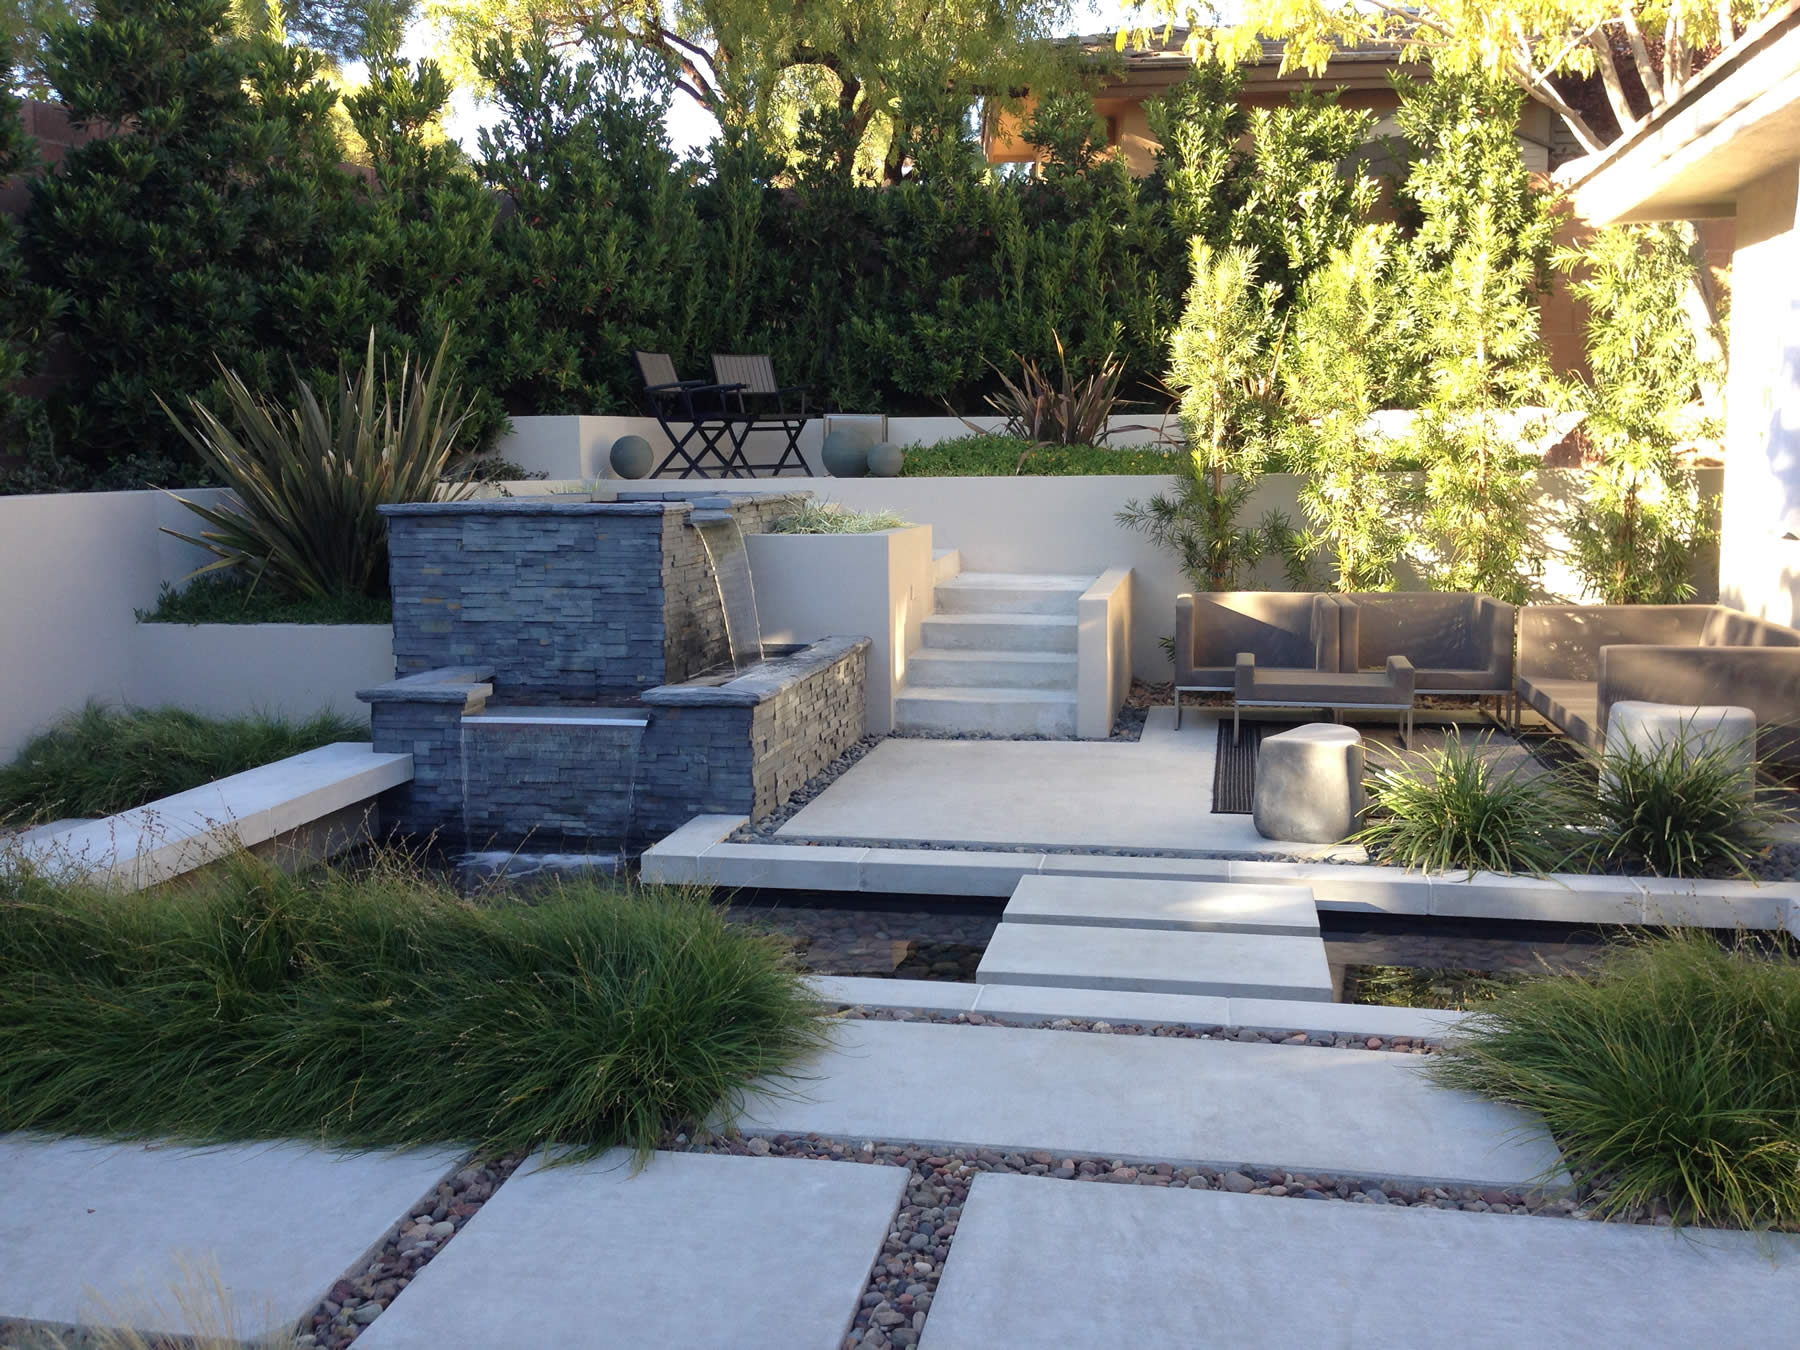 Award winning landscape architect, Jonathan Spears of Sage Design Studios